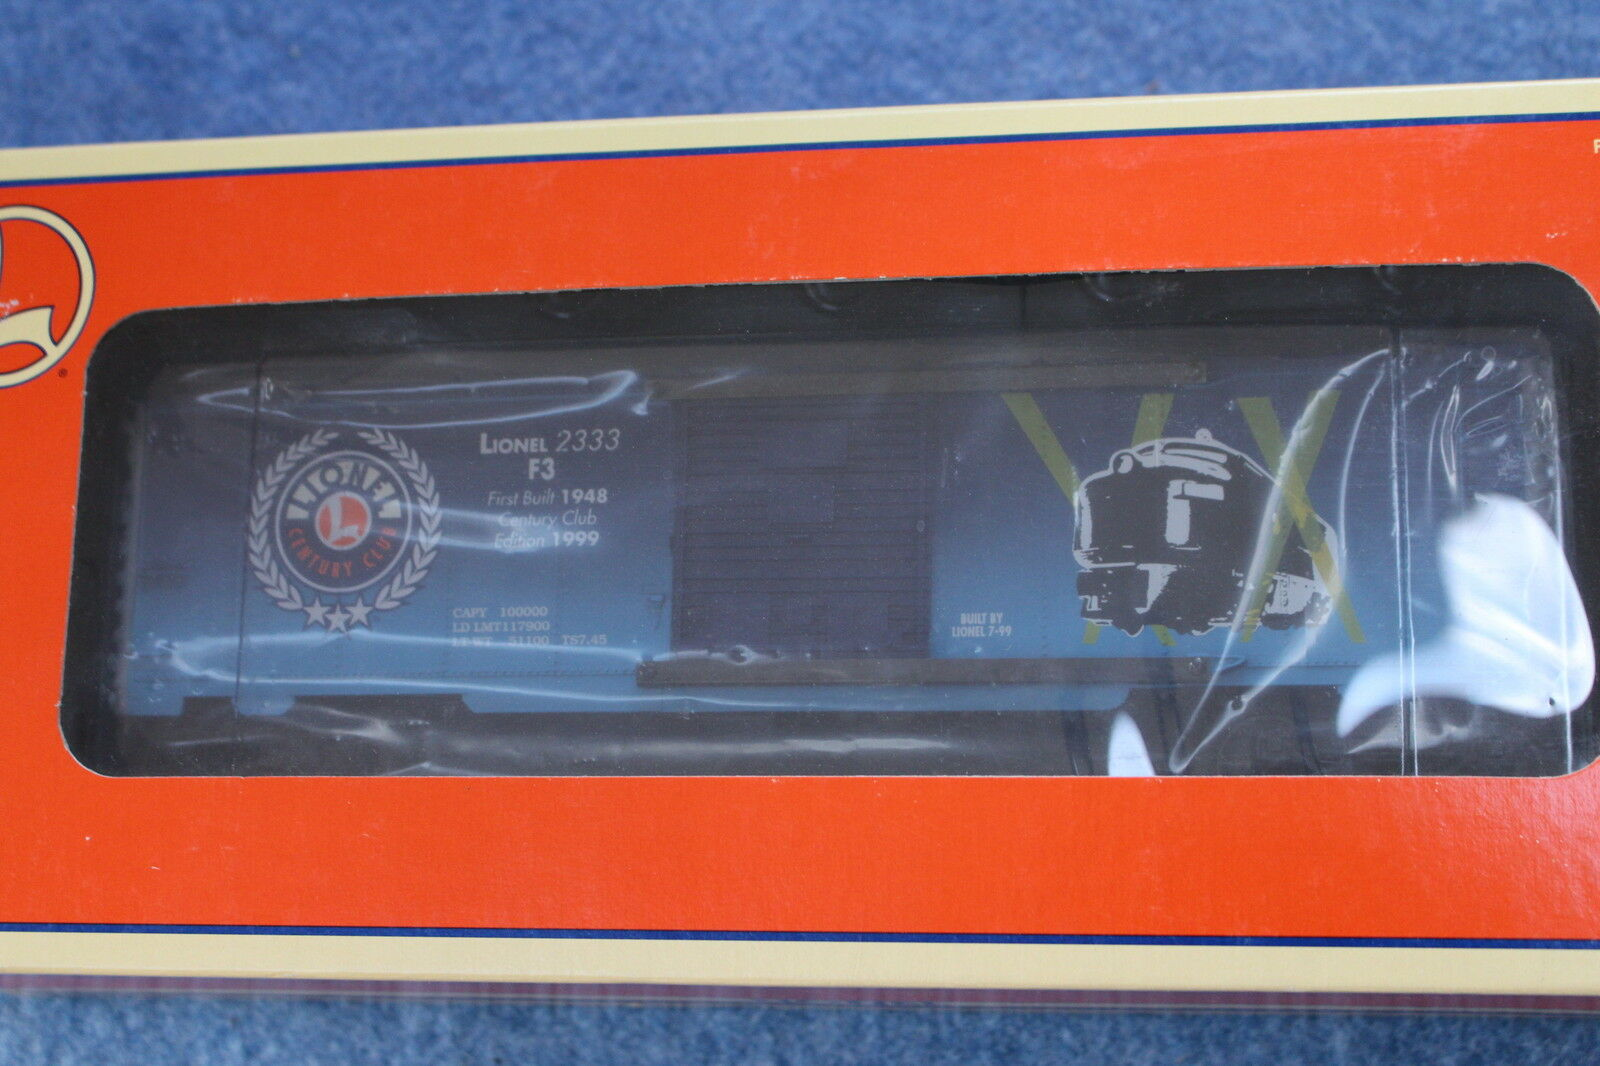 1999 Lionel 6-29248 NYC 2333 F3 Century Club Box Car L2724